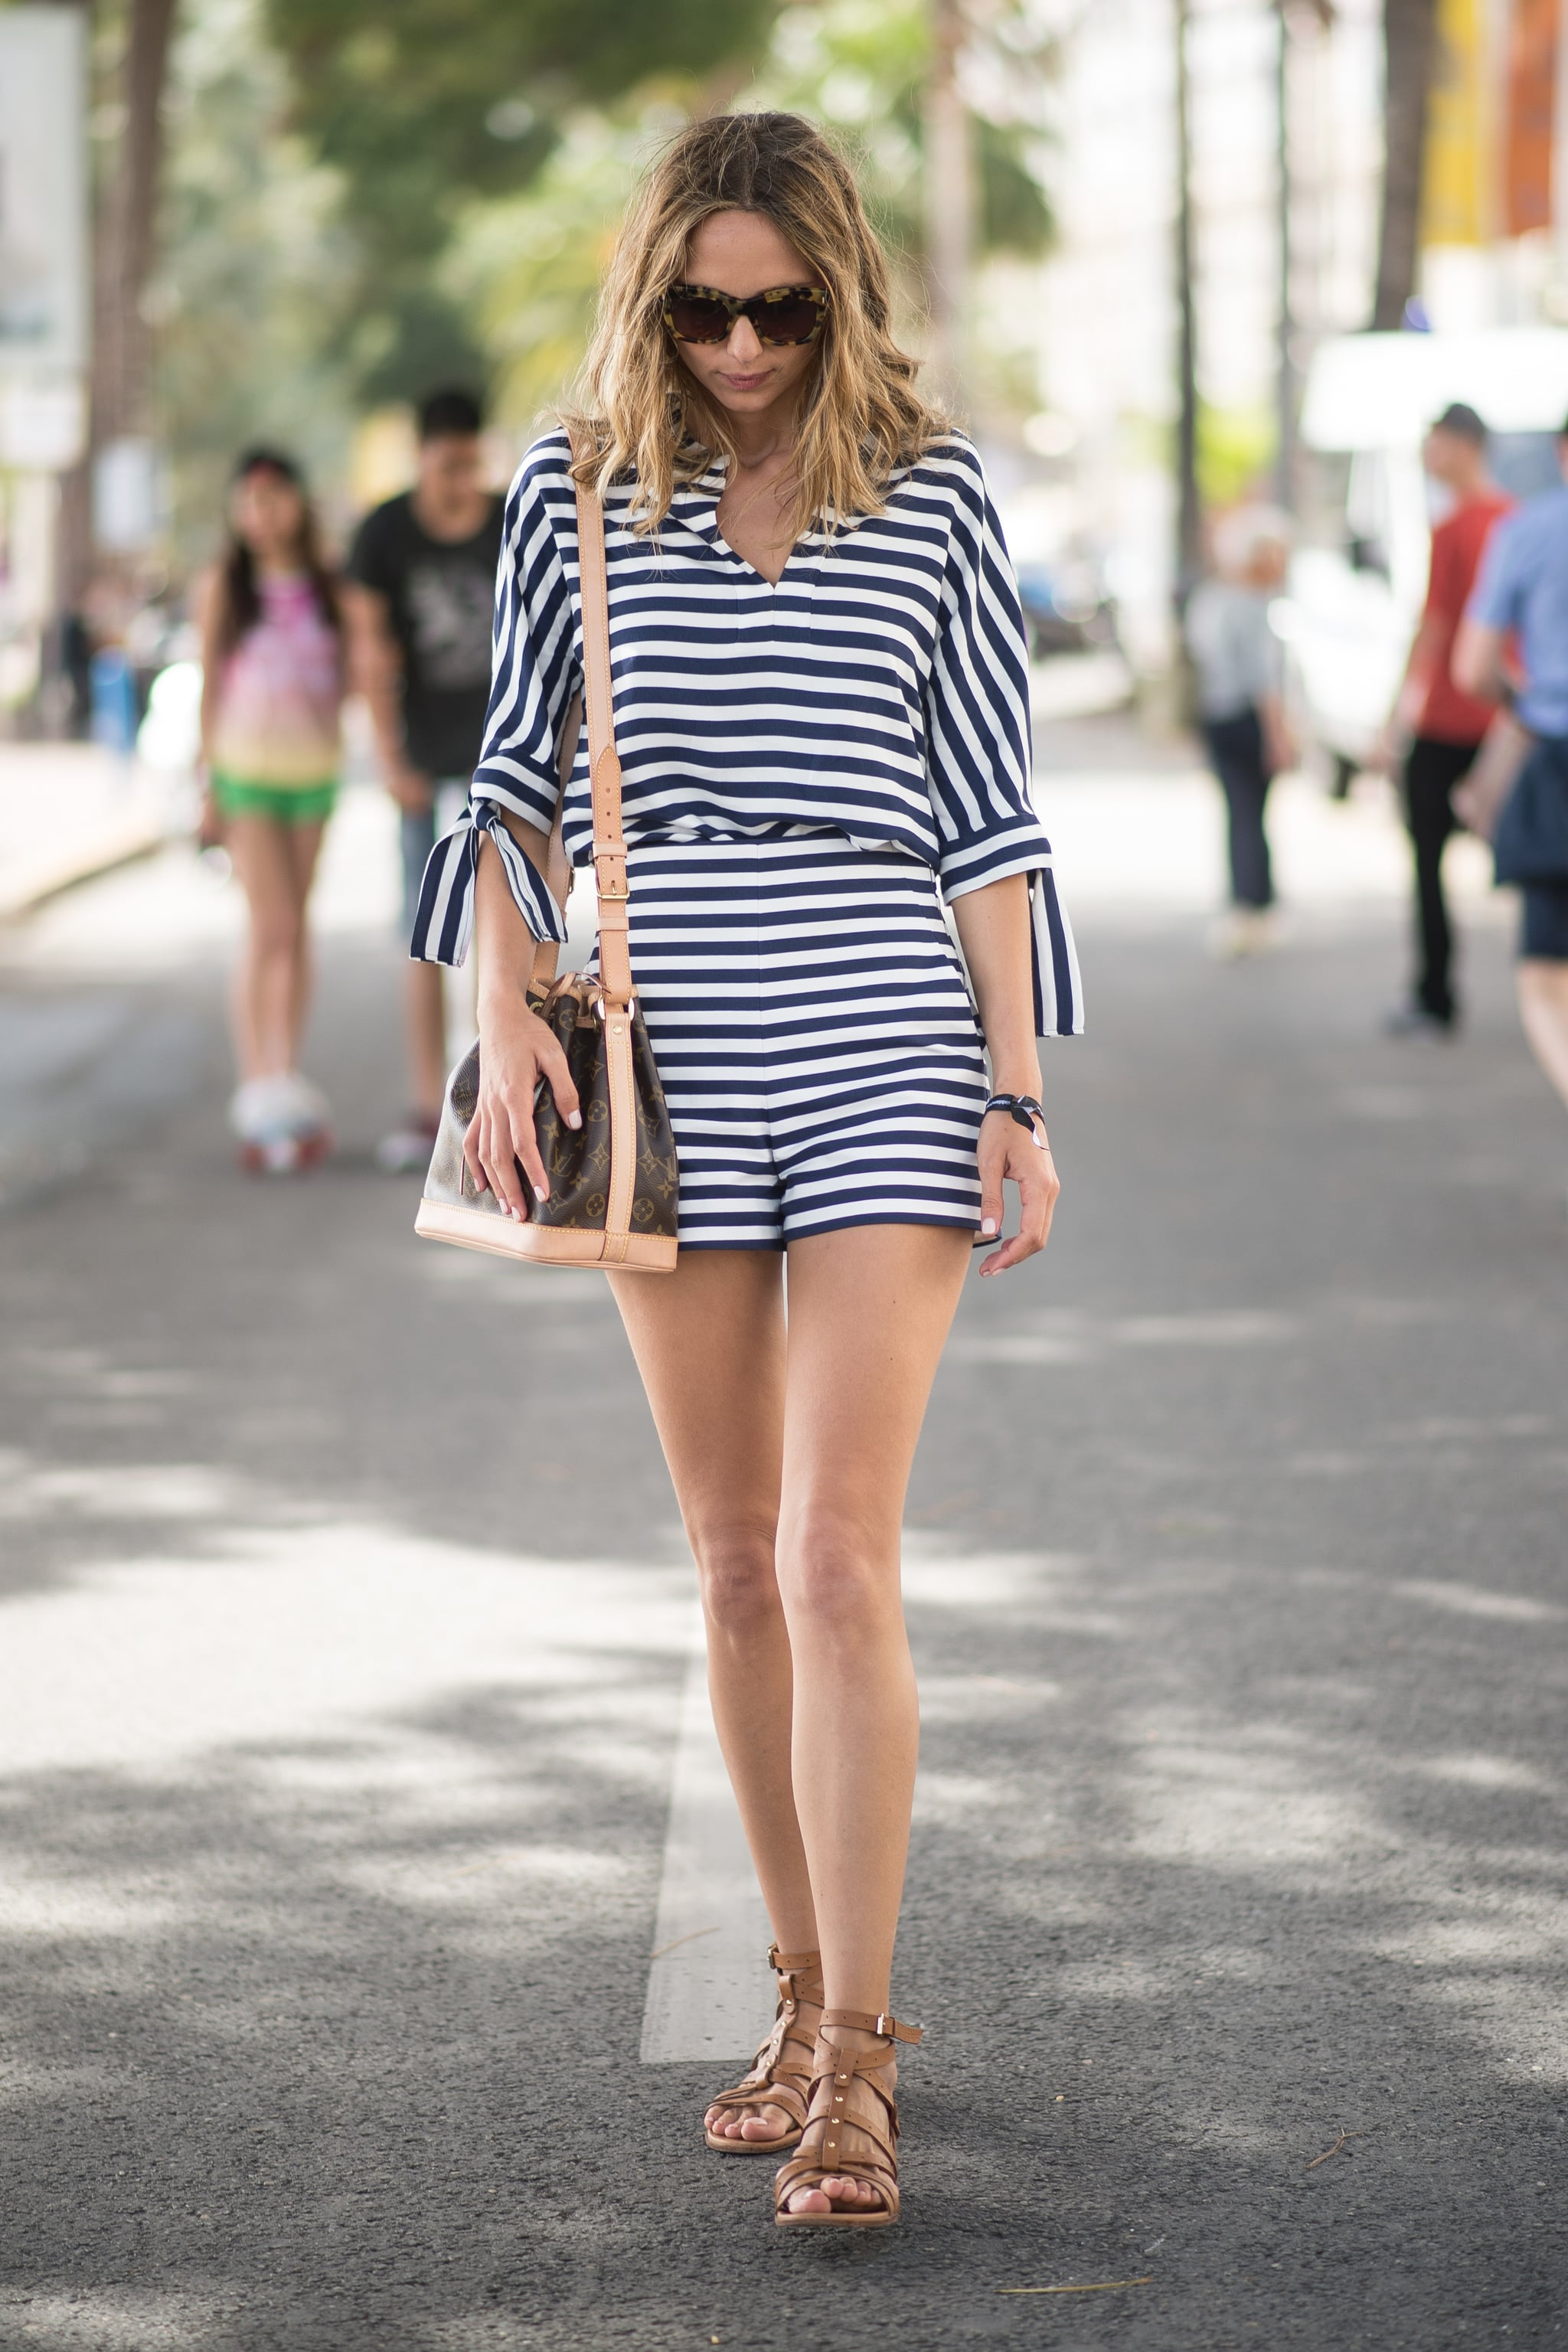 Nothing feels quite so summery as a classic striped look. Just add your favorite neutral sandals and bag to finish.